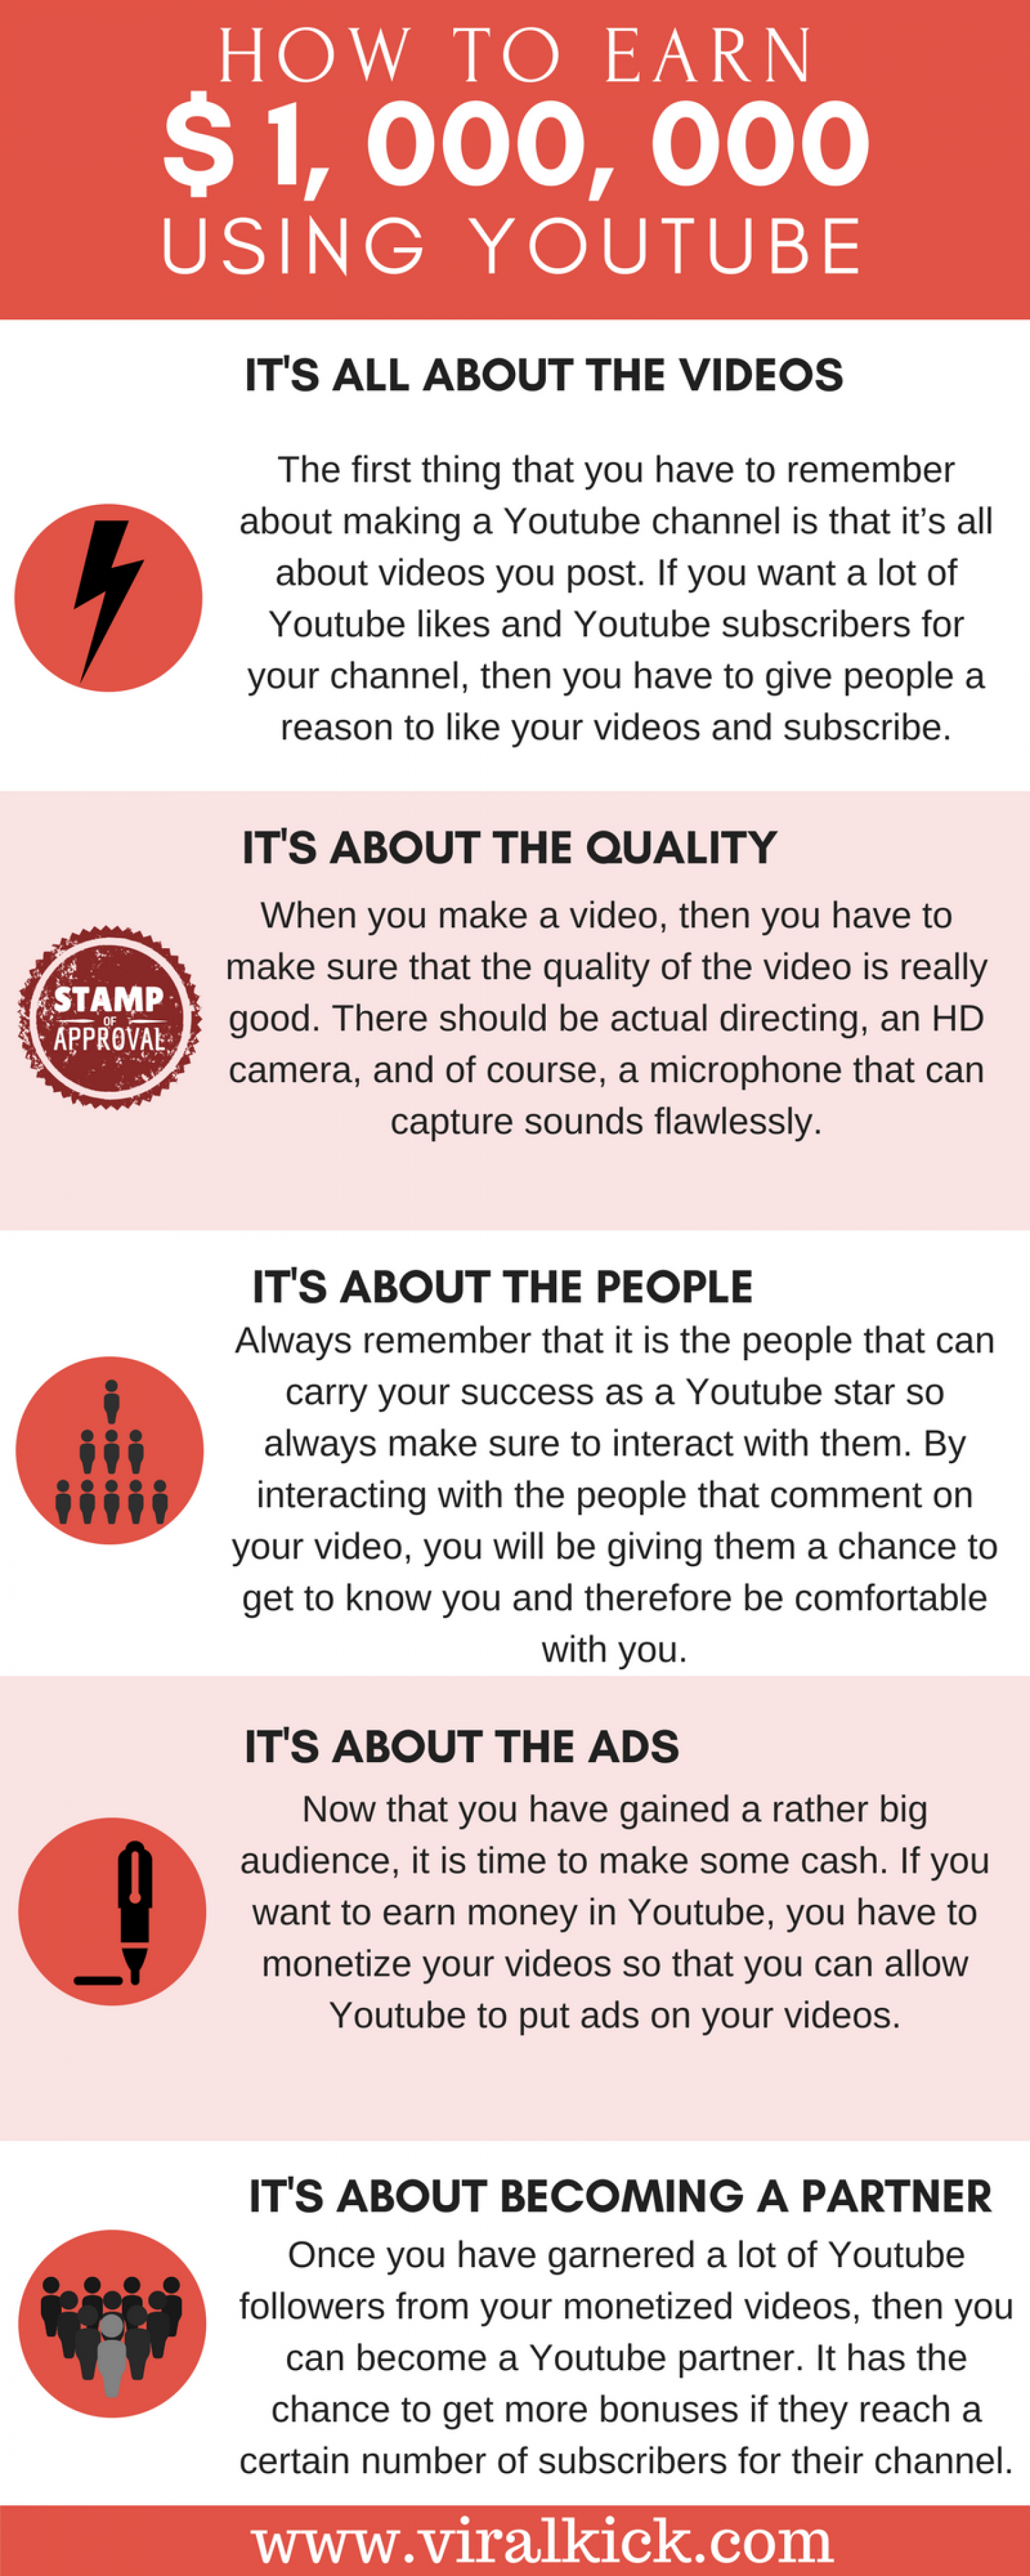 How To Ear 1 000 000 Using Youtube Infographic Youtube Earn